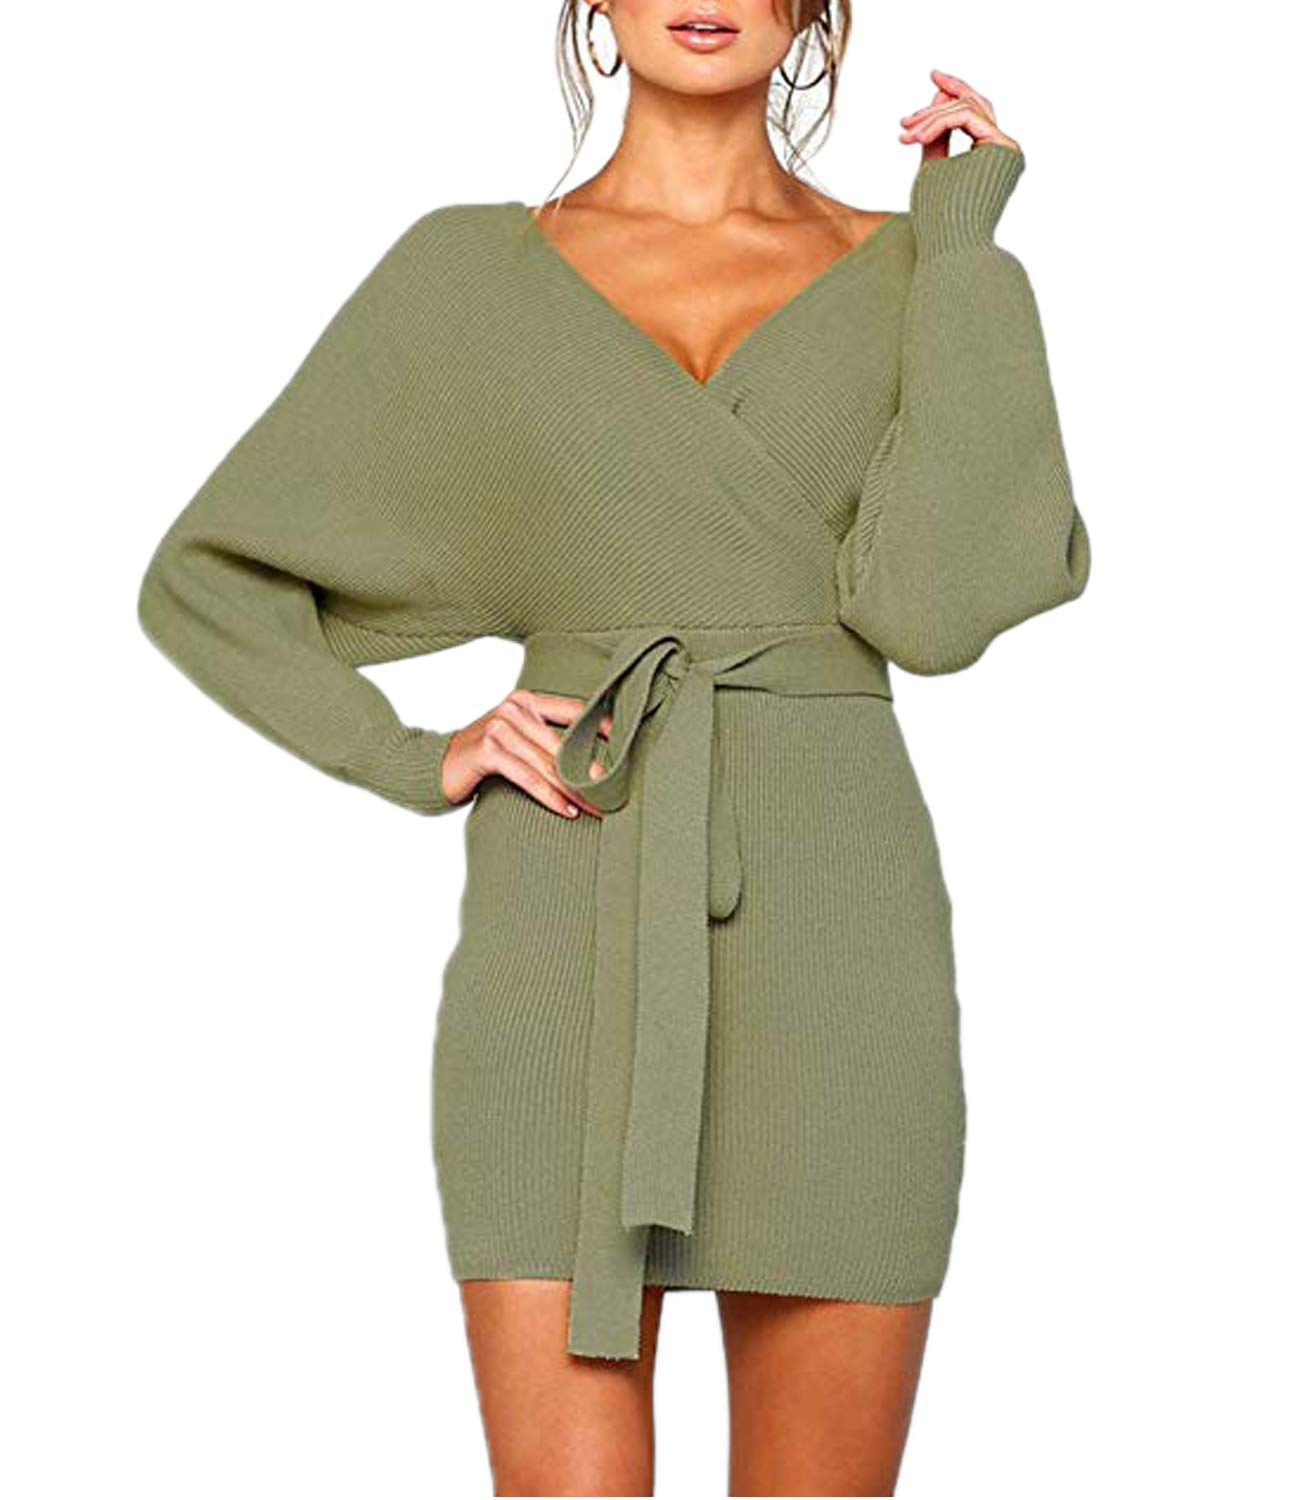 Sweater Dress - Women's Loose Oversize Turtleneck Wool Long Pullover Sweater Dress